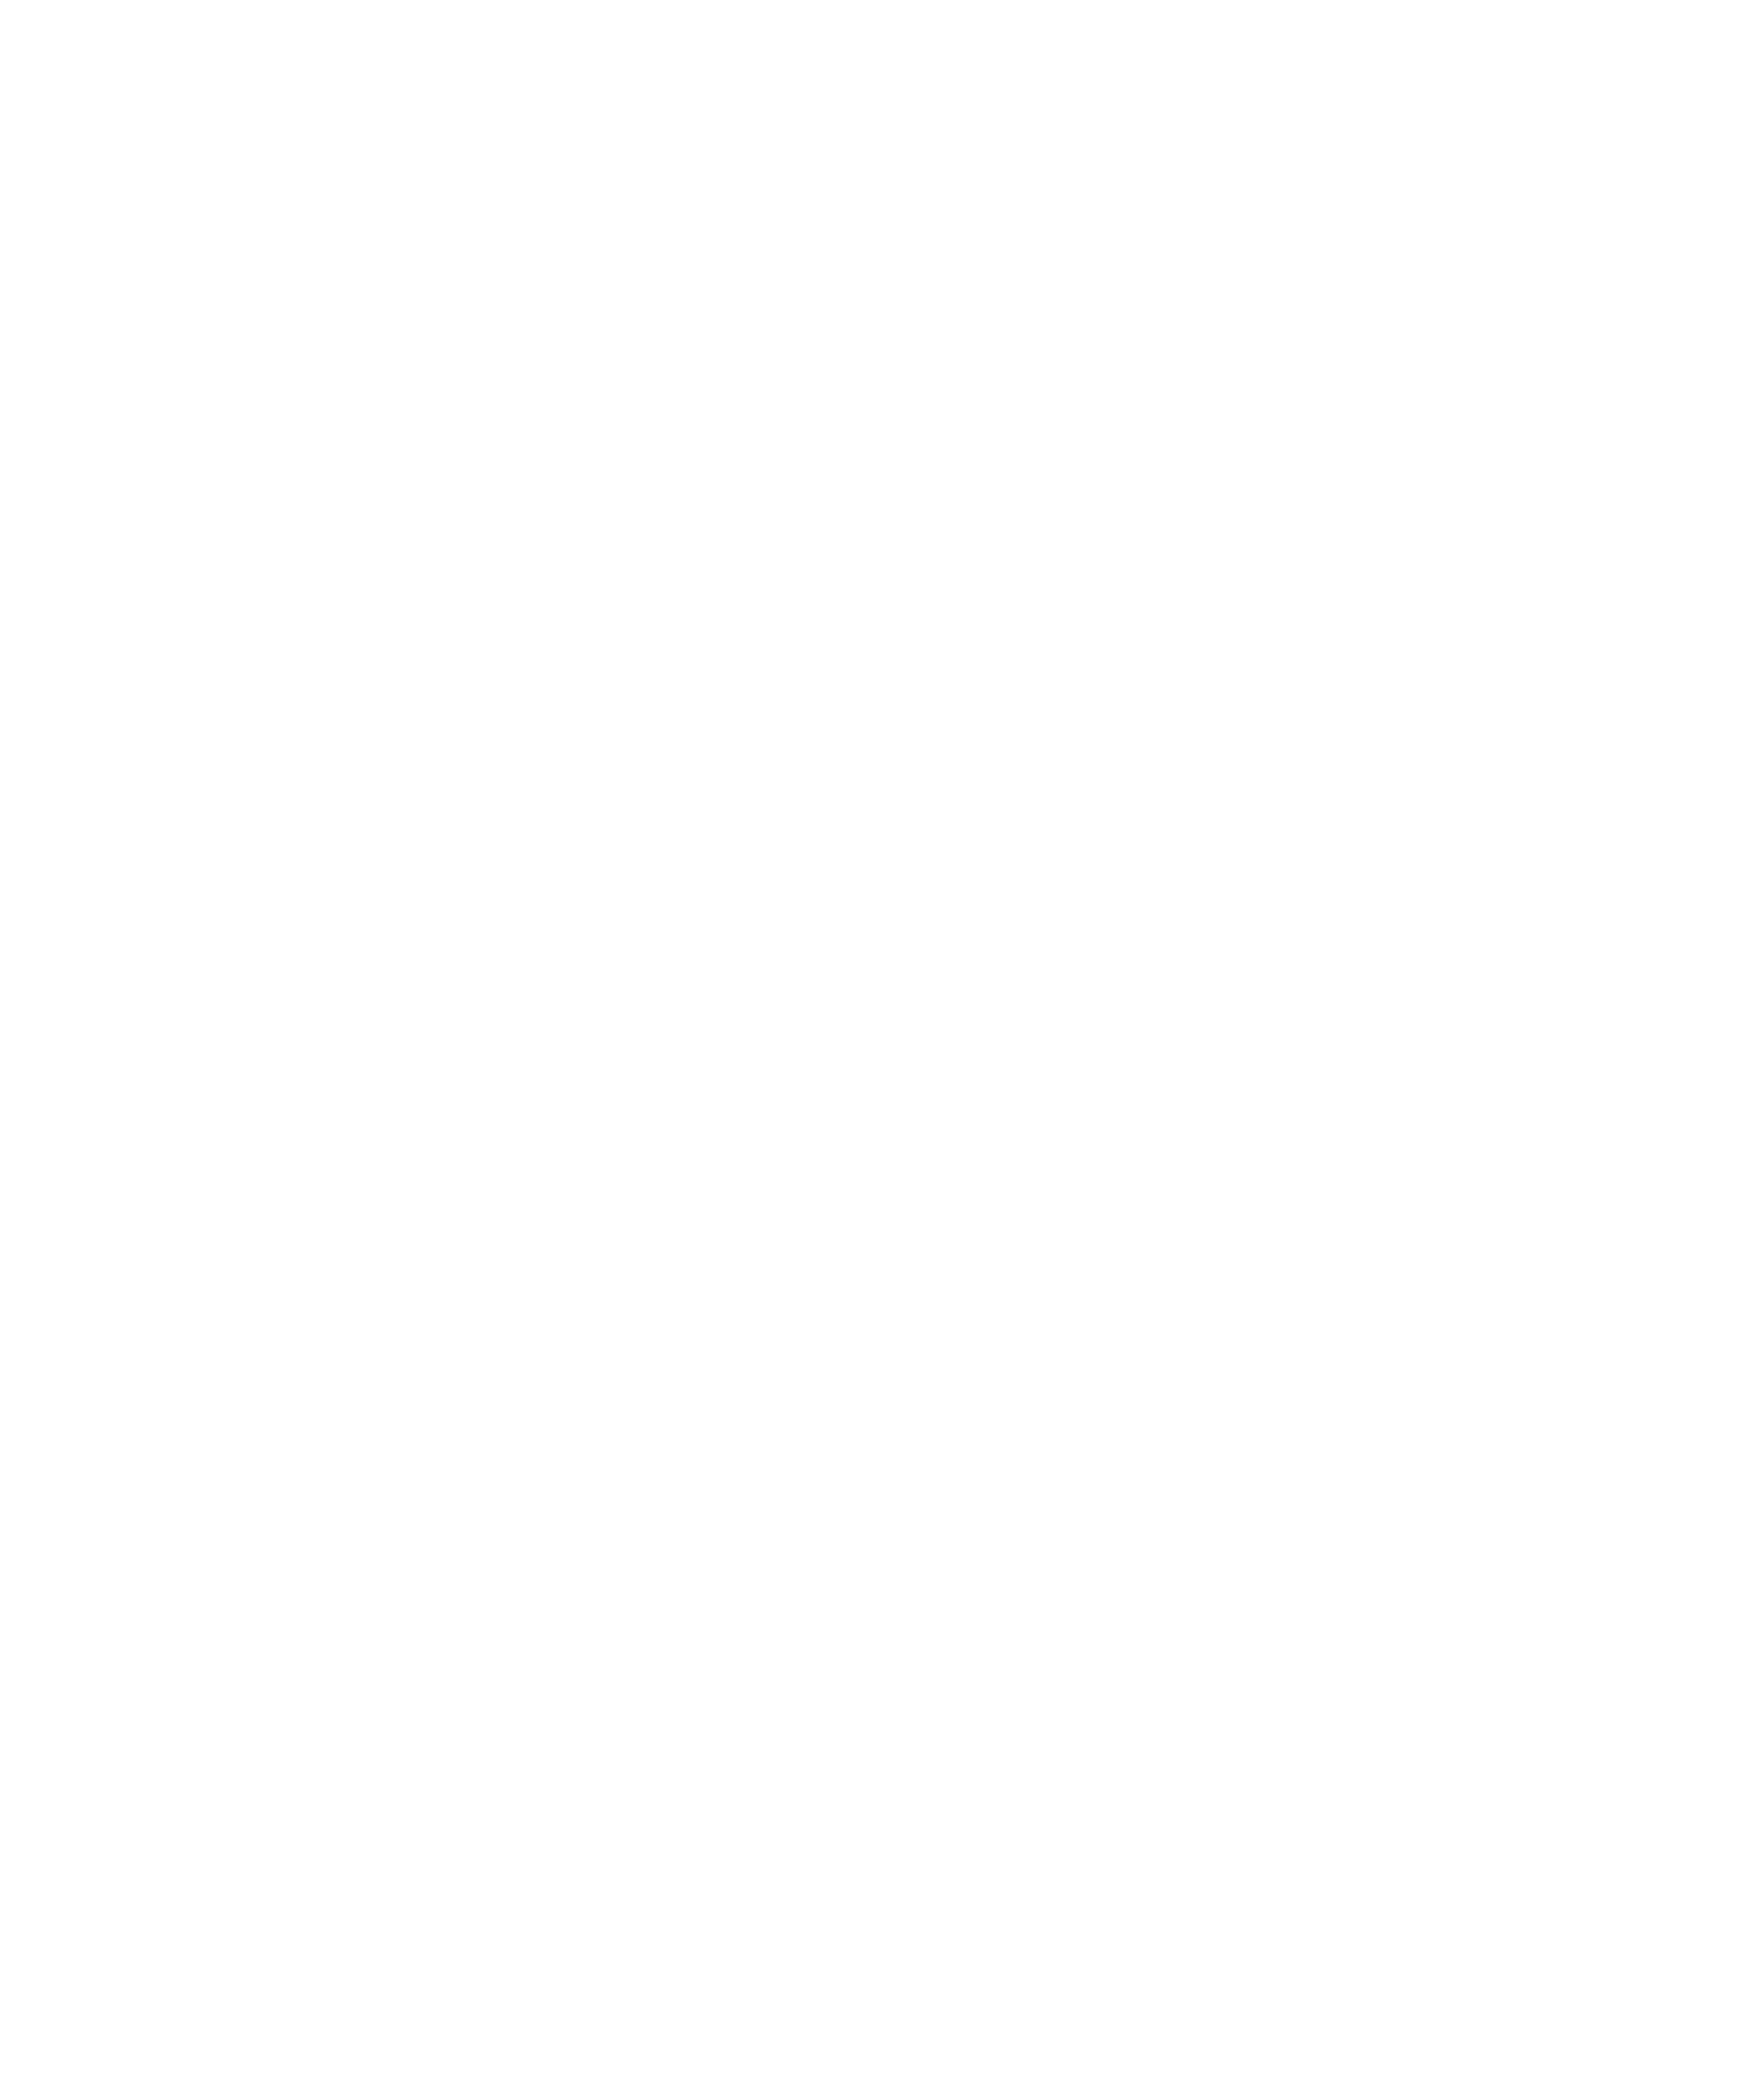 Midtown Village